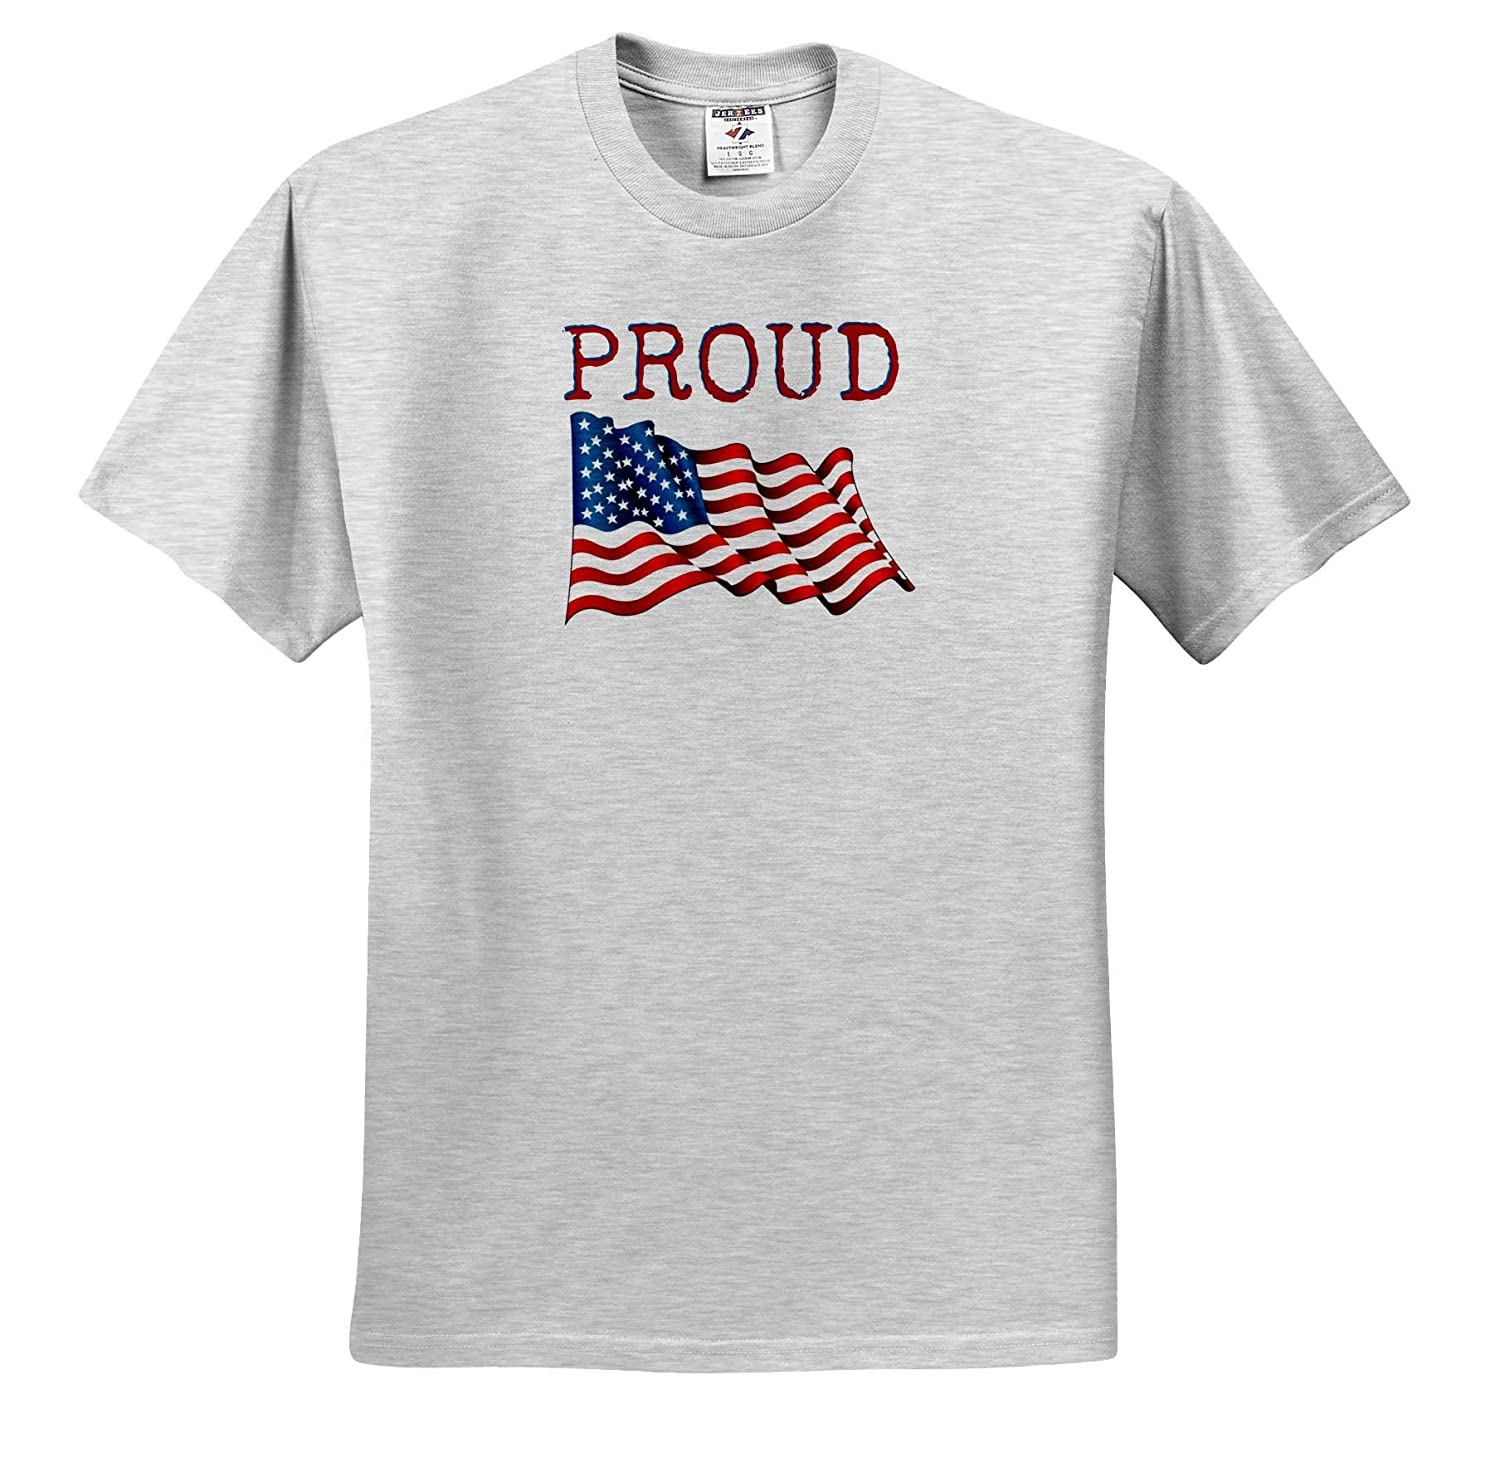 3dRose Carrie Quote Image Image of Flag Quote of Proud Adult T-Shirt XL ts/_320020